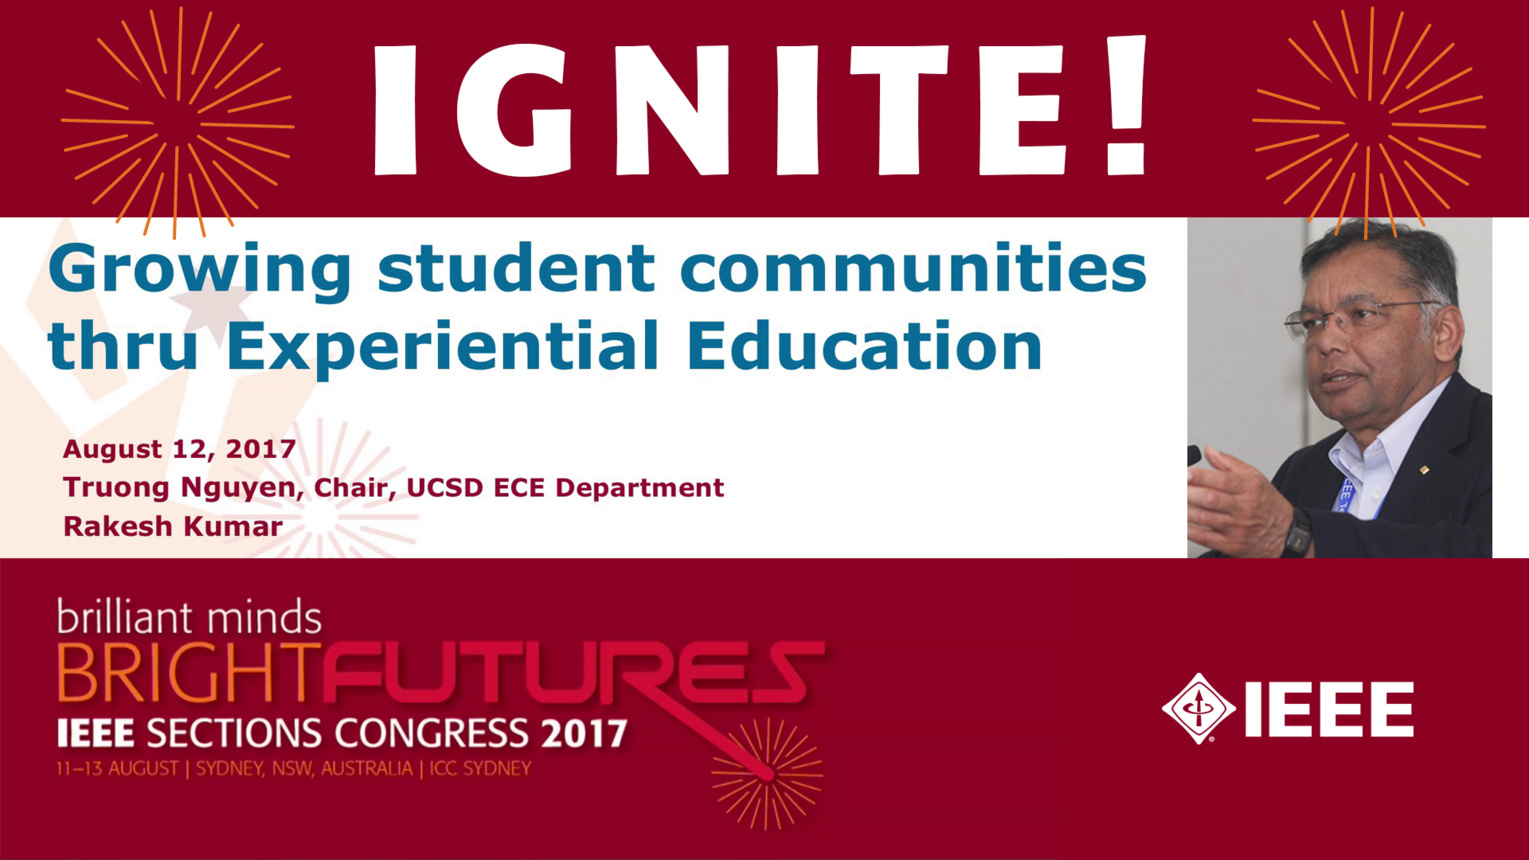 Growing Student Communities Through Experiential Education - Rakesh Kumar - Ignite: Sections Congress 2017